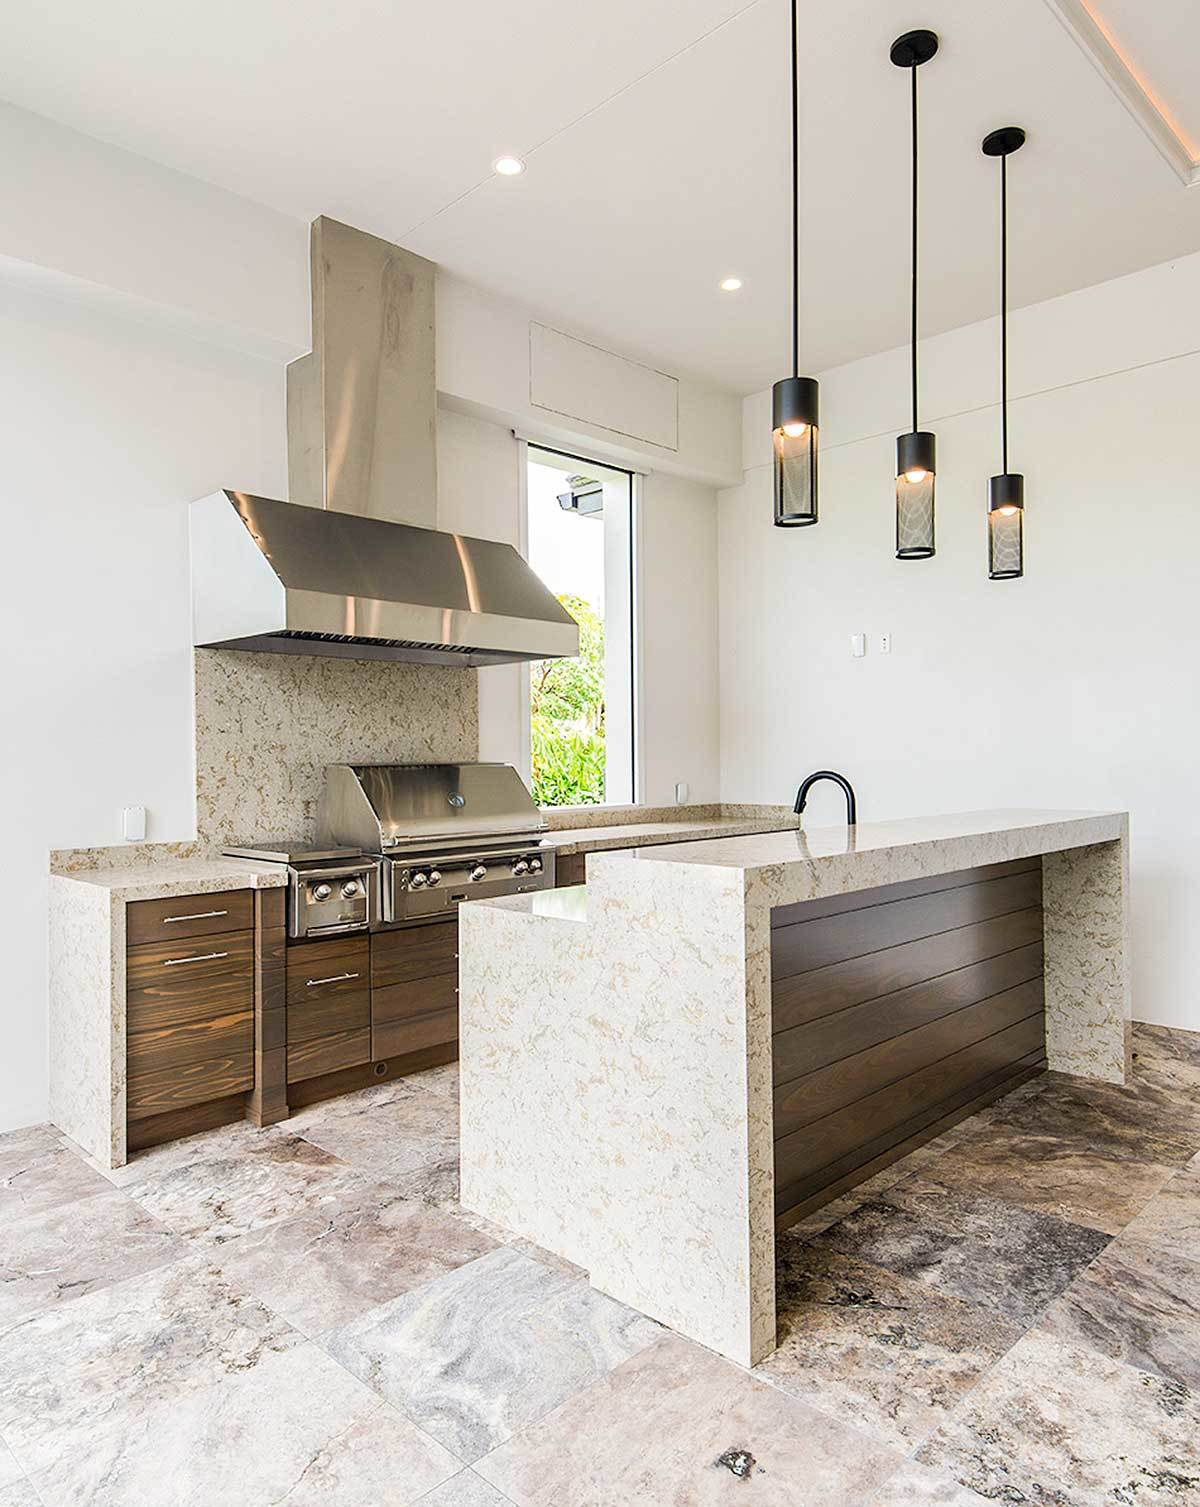 A closer look at the kitchen shows the dark wood cabinets, elegant granite countertops, and a two-tier island lit by black pendants.